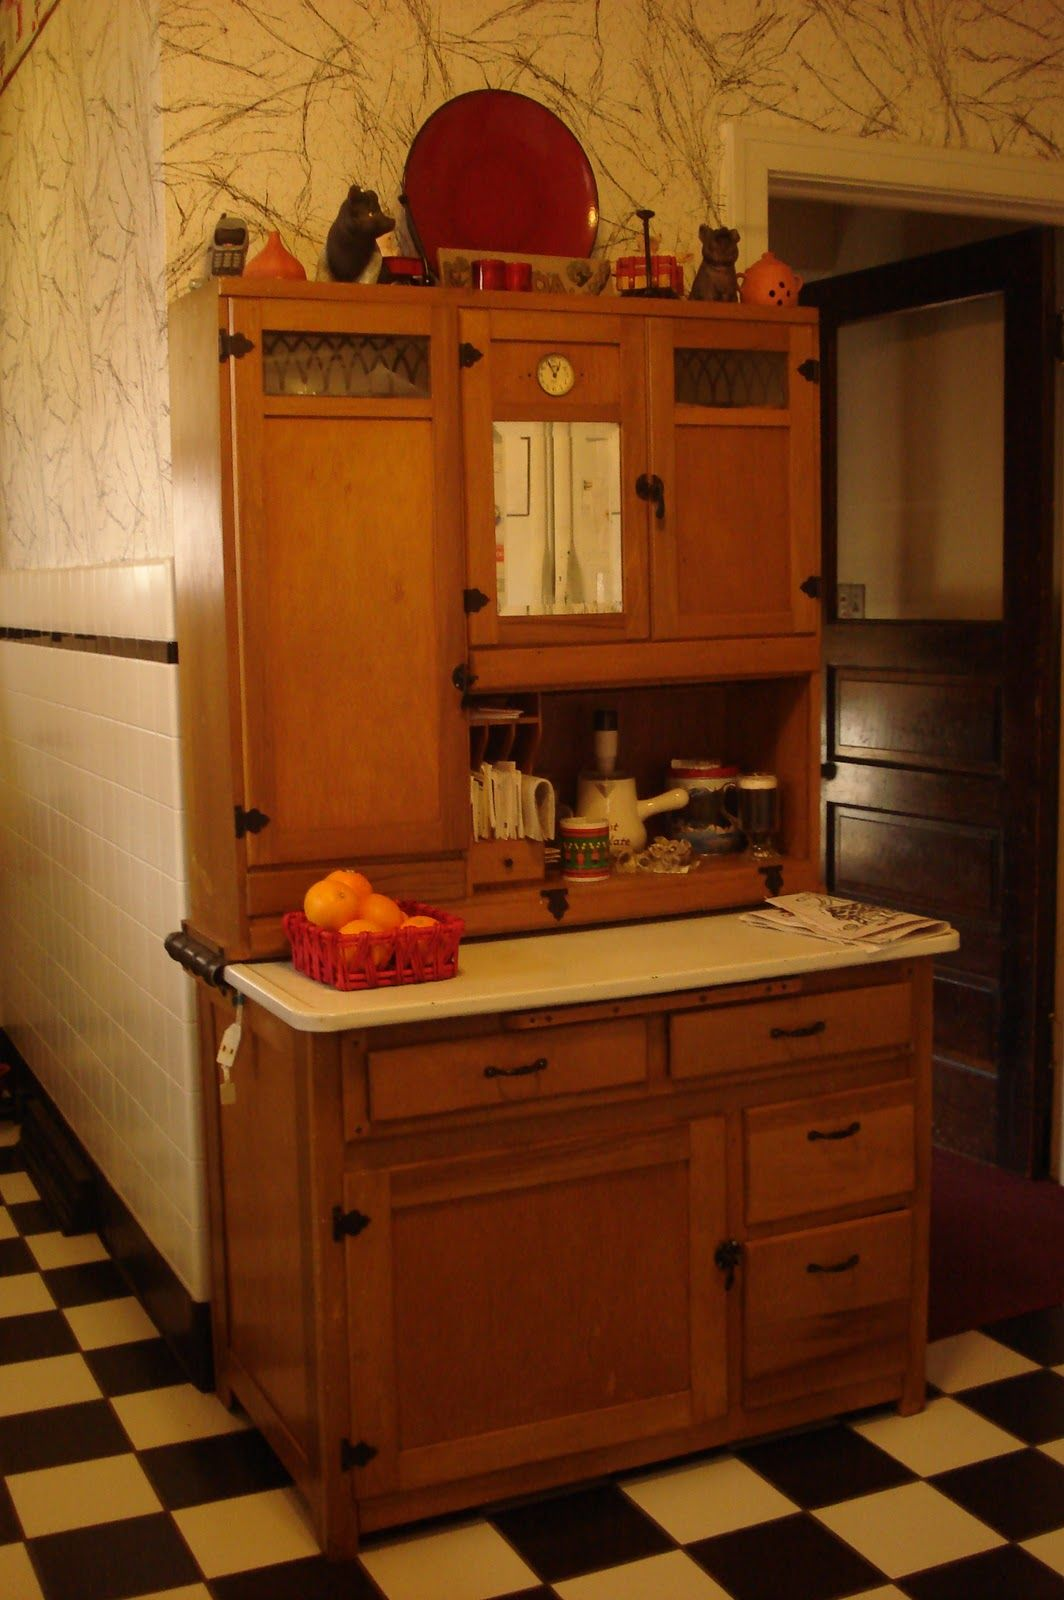 Estate Sale Listing Kitchen Cabinet Styles Retro Kitchen Kitchen Paint Design